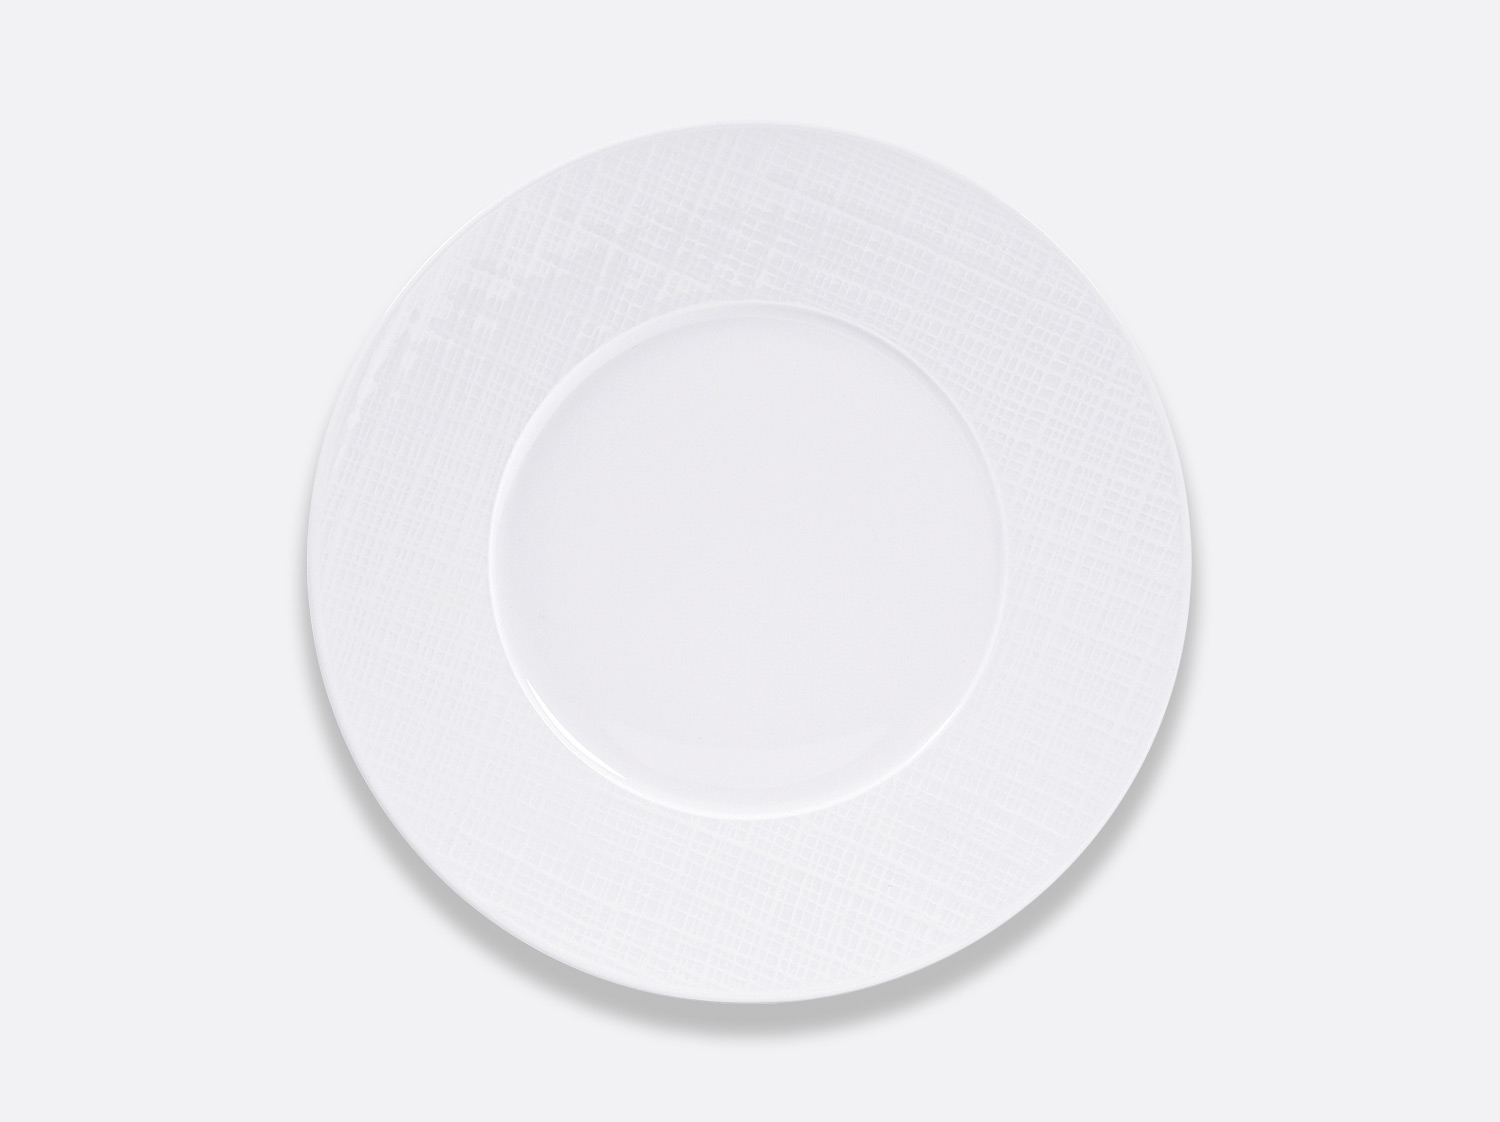 China Plate 26 cm of the collection Organza | Bernardaud